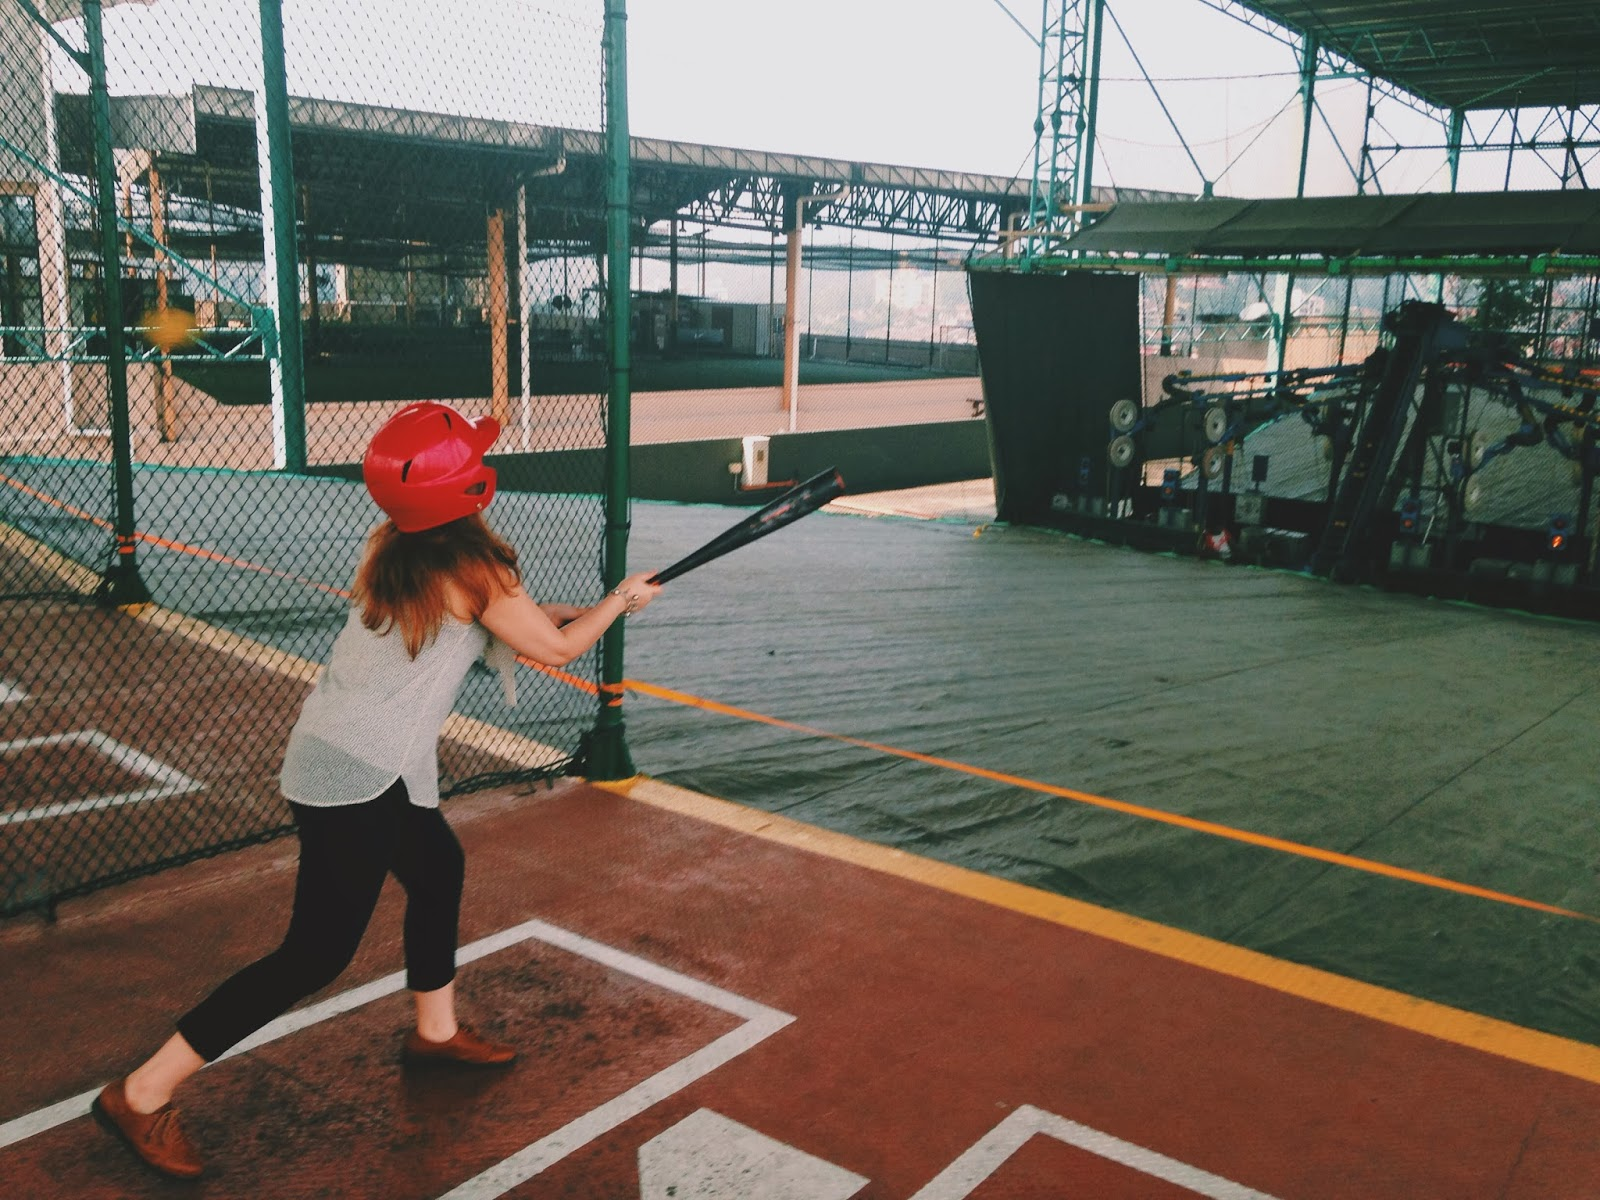 Image result for kid Play ball at It's a Hit! Batting Cages